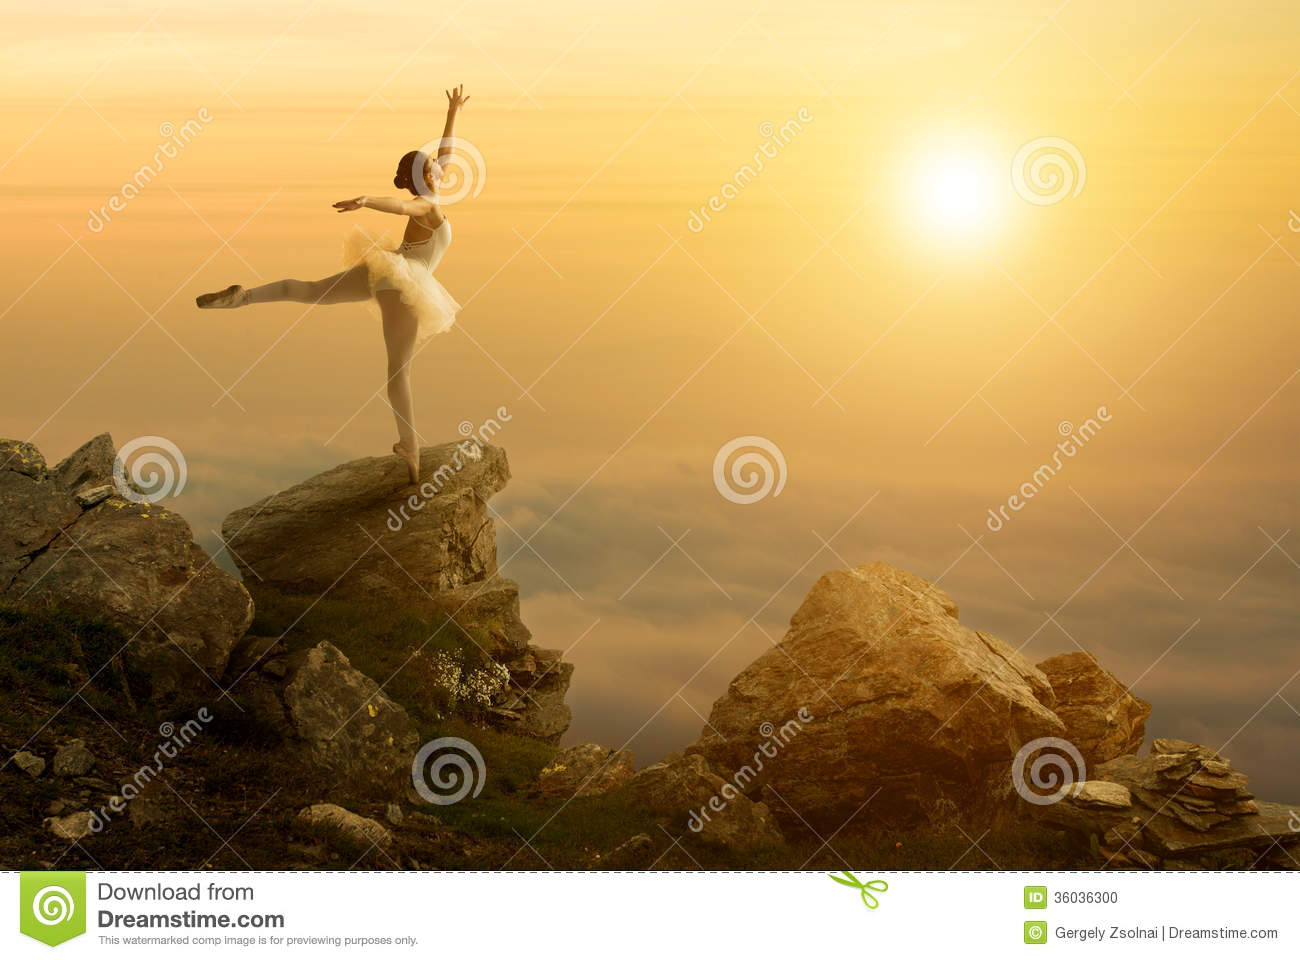 Mystic pictures, ballet dancer stands on the cliff edge